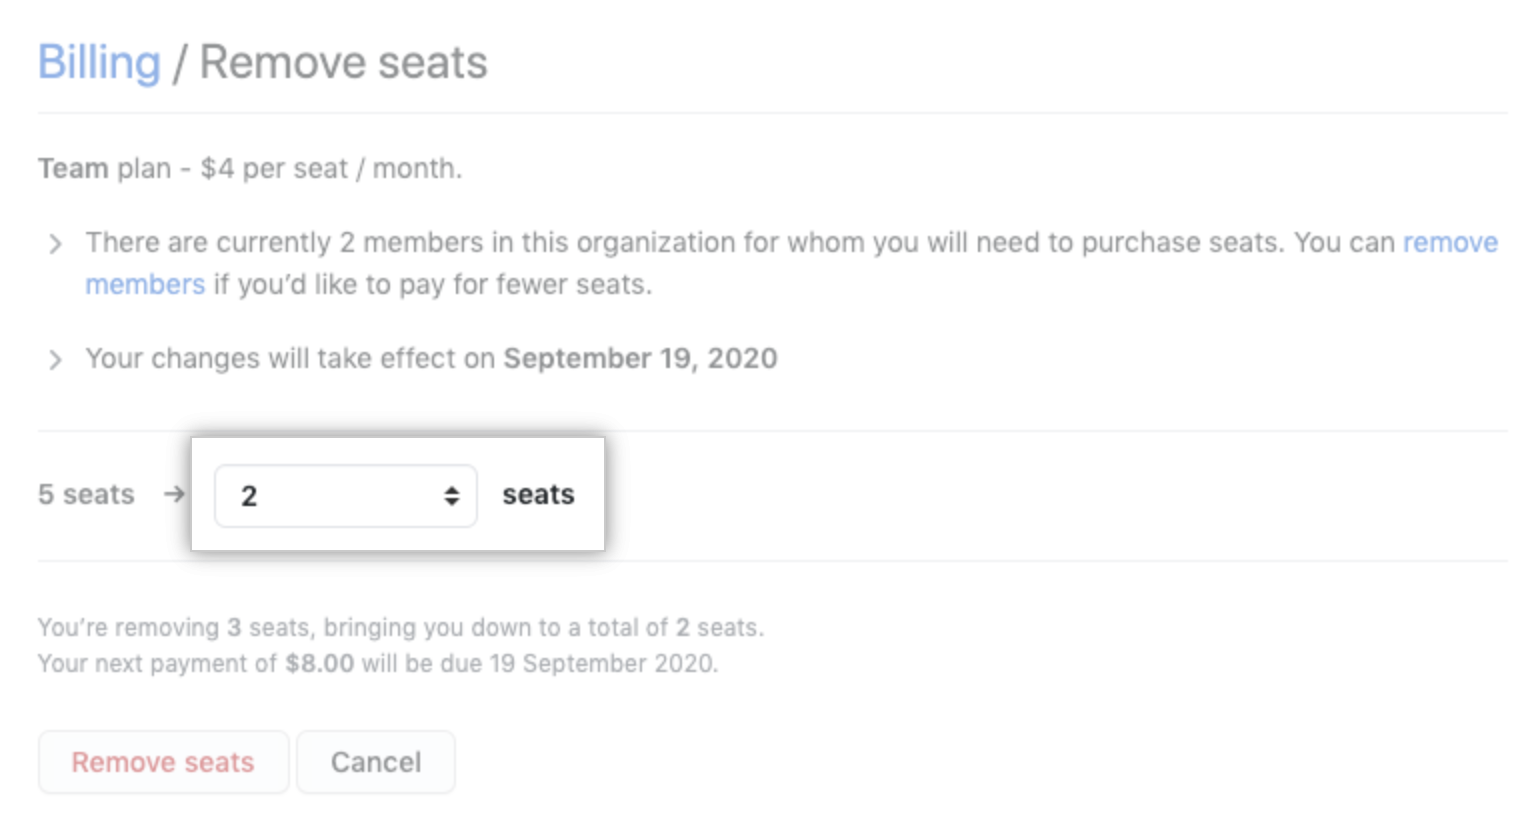 remove seats option